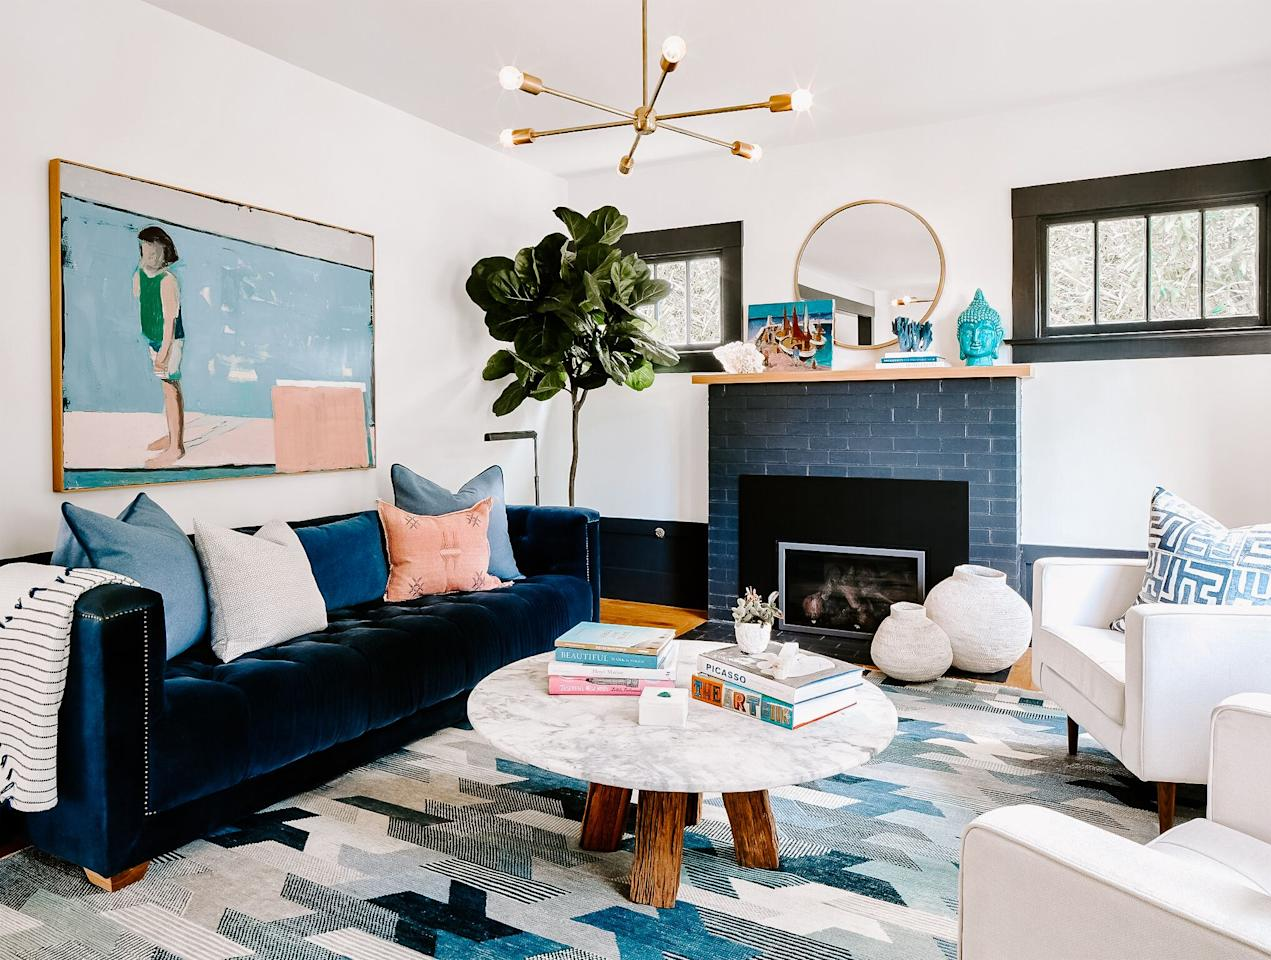 <p>Family rooms are practical, comfortable spaces for spending time together–and bright colors and beautiful design can make you want to lounge in them all the time. Here, designers paired bold wallcoverings, patterned upholstery, over-the-top art, and more to craft dynamic family rooms that make a vibrant statement.<br></p>